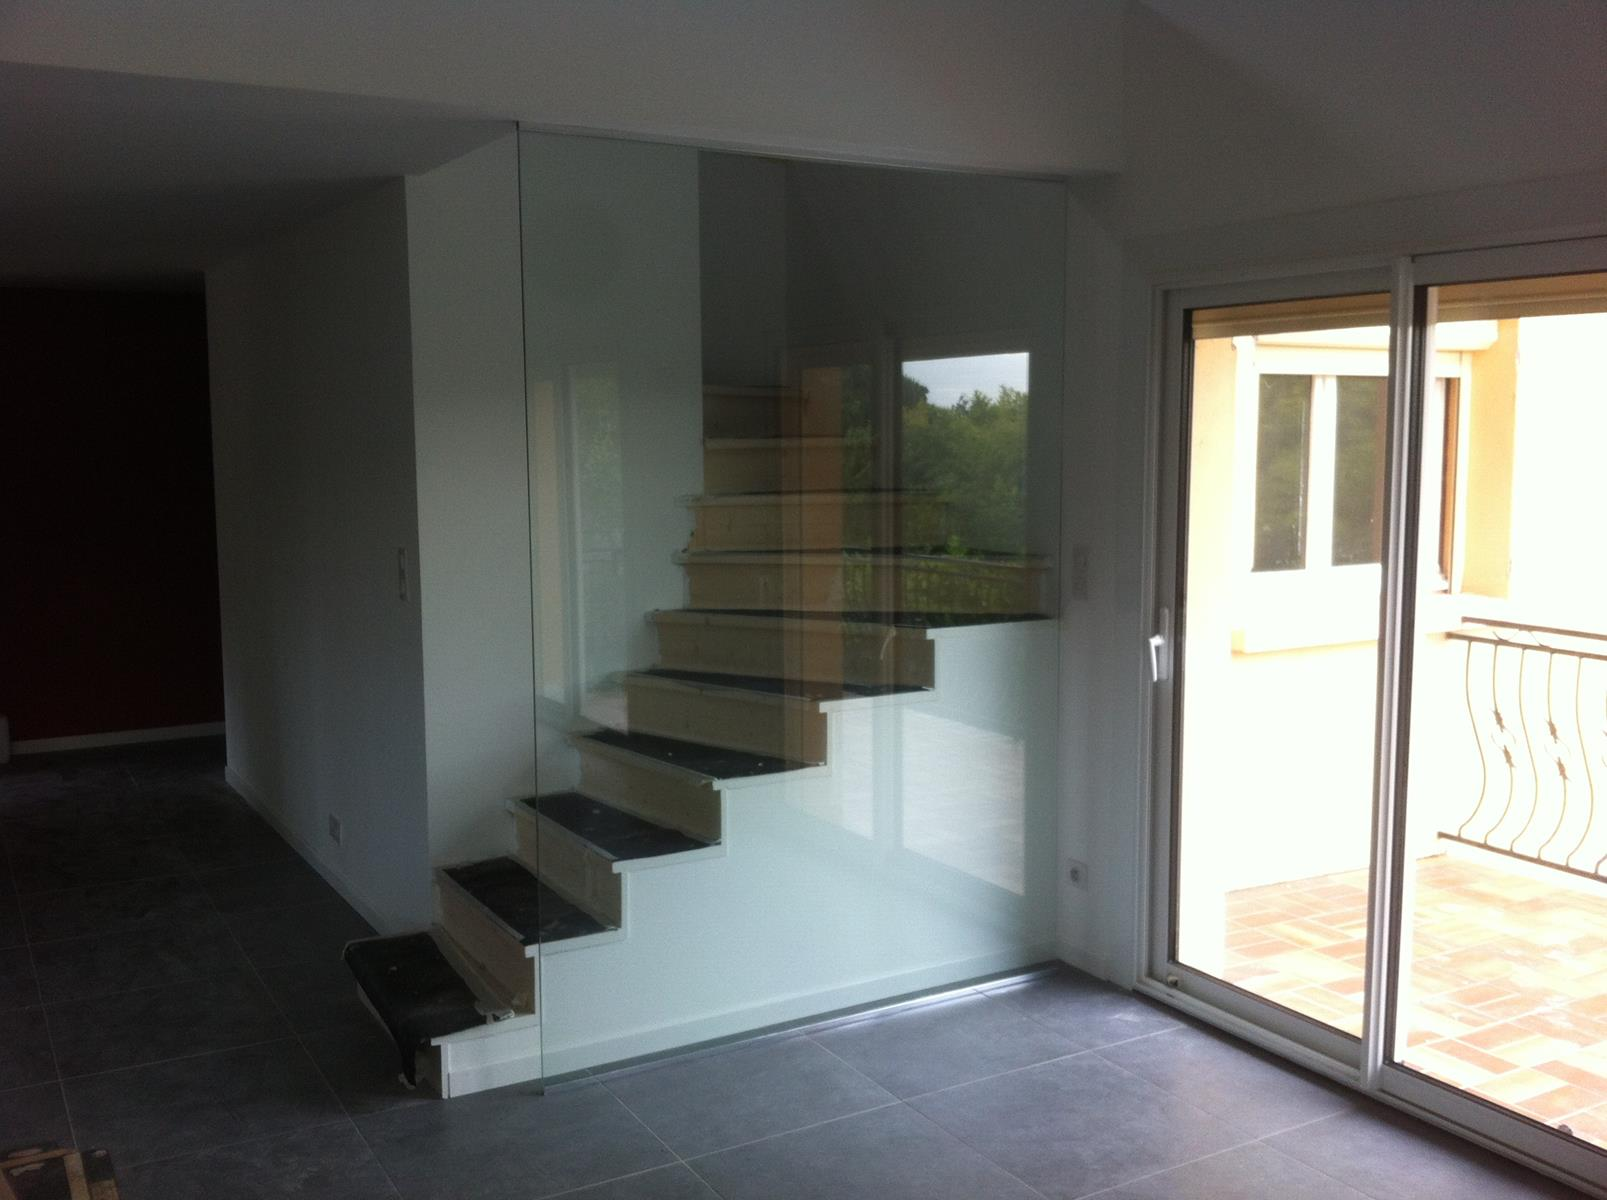 Am nagement int rieur siala for Cloison en verre interieur